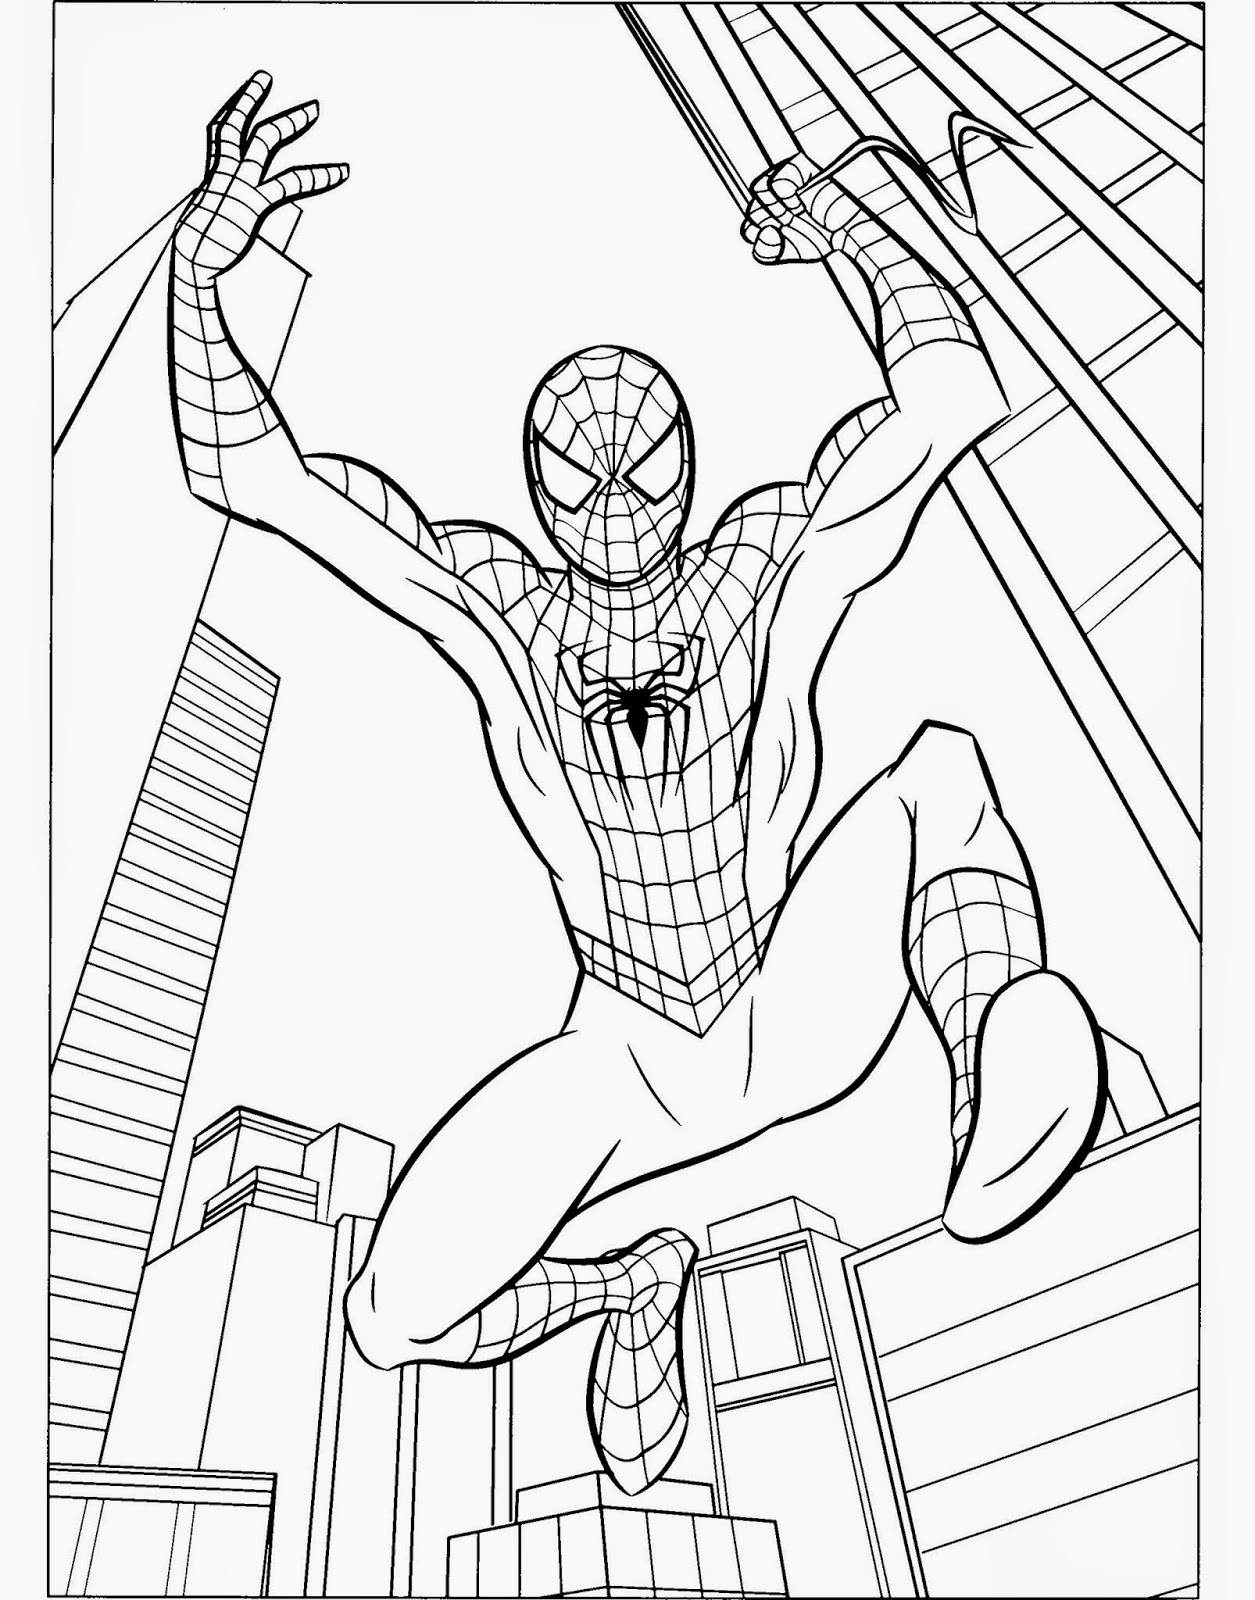 spiderman coloring pages printables coloring pages spiderman free printable coloring pages spiderman pages coloring printables